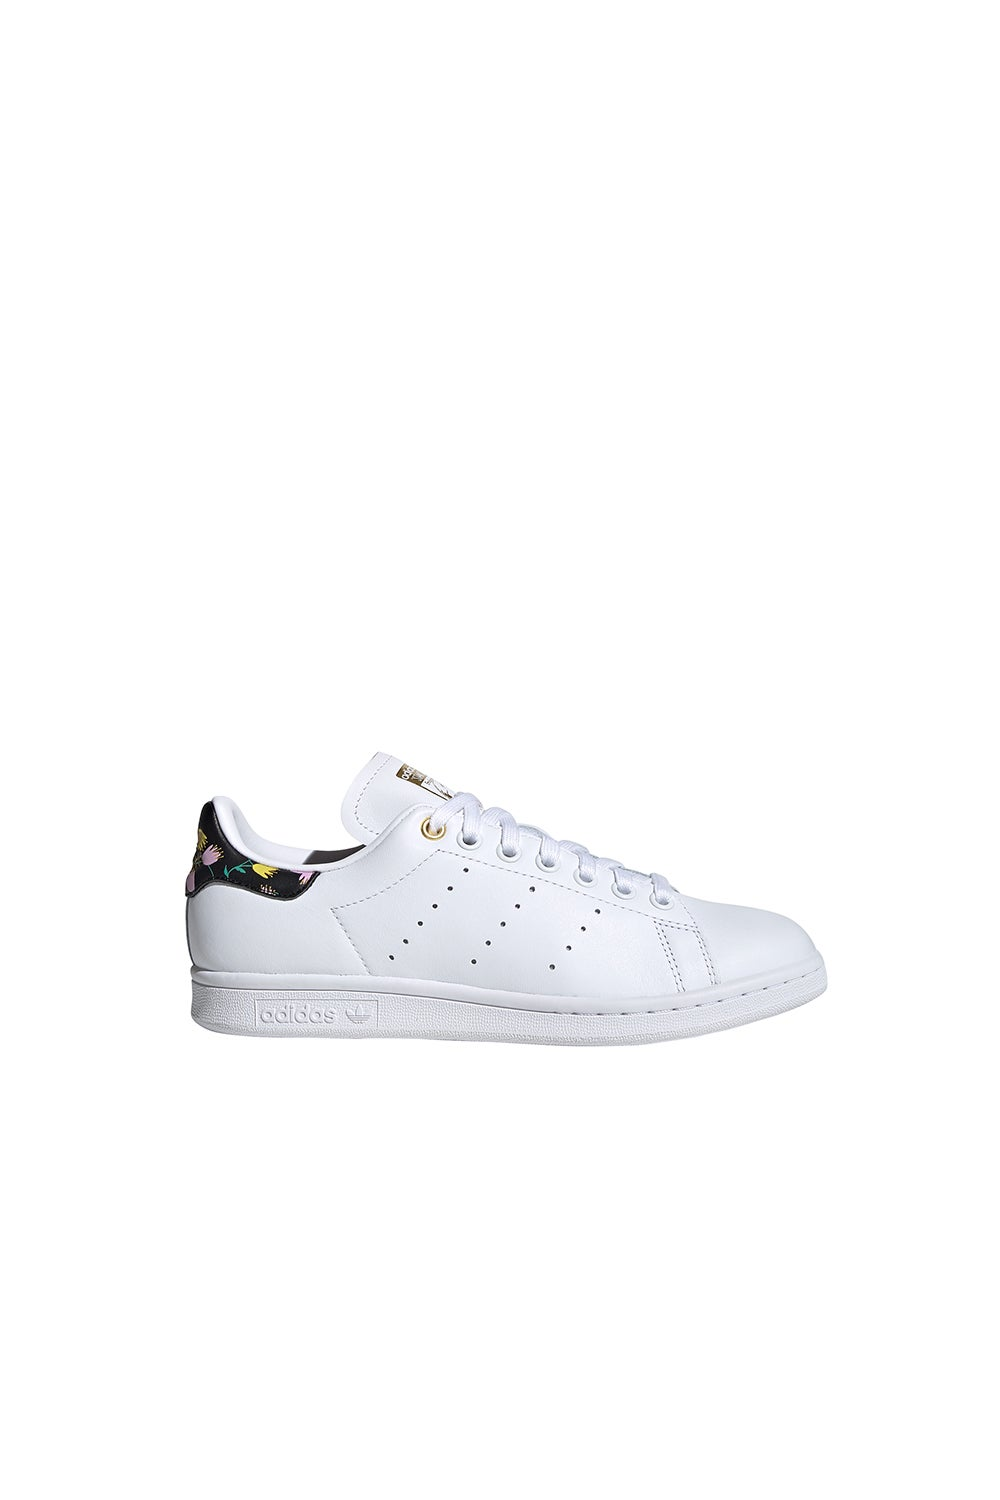 adidas Stan Smith FTWR White/Core Black